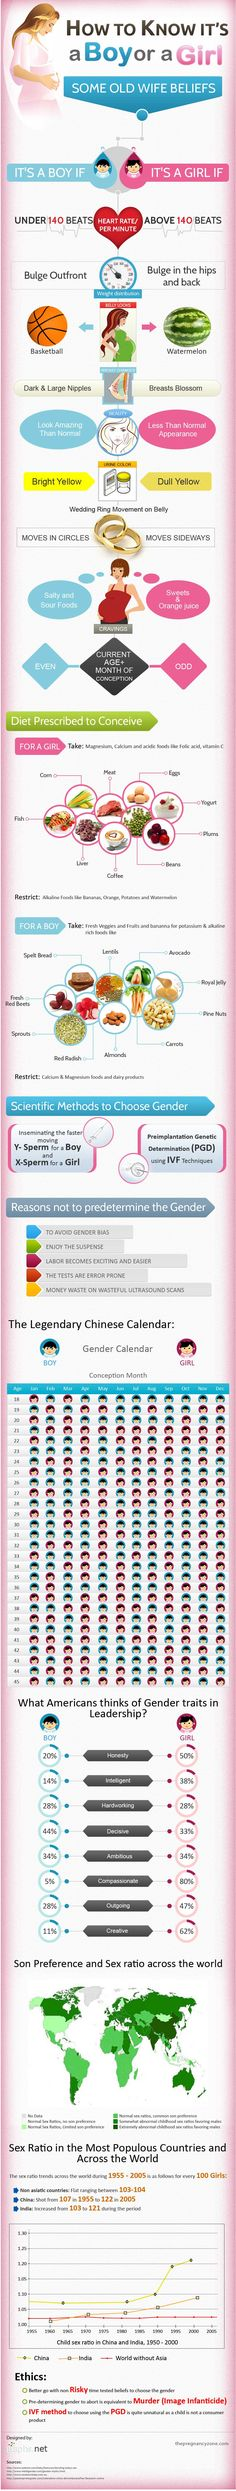 There are ways you can know whether you are having a baby girl or a boy without using the USG. Your physical appearance as well as other subtle sign can be used pretty reliably to determine whether you are going to paint the babys room blue or pink.    The infographic also contains information on what you can do in term of dieting to nudge the gender selection towards your wish.